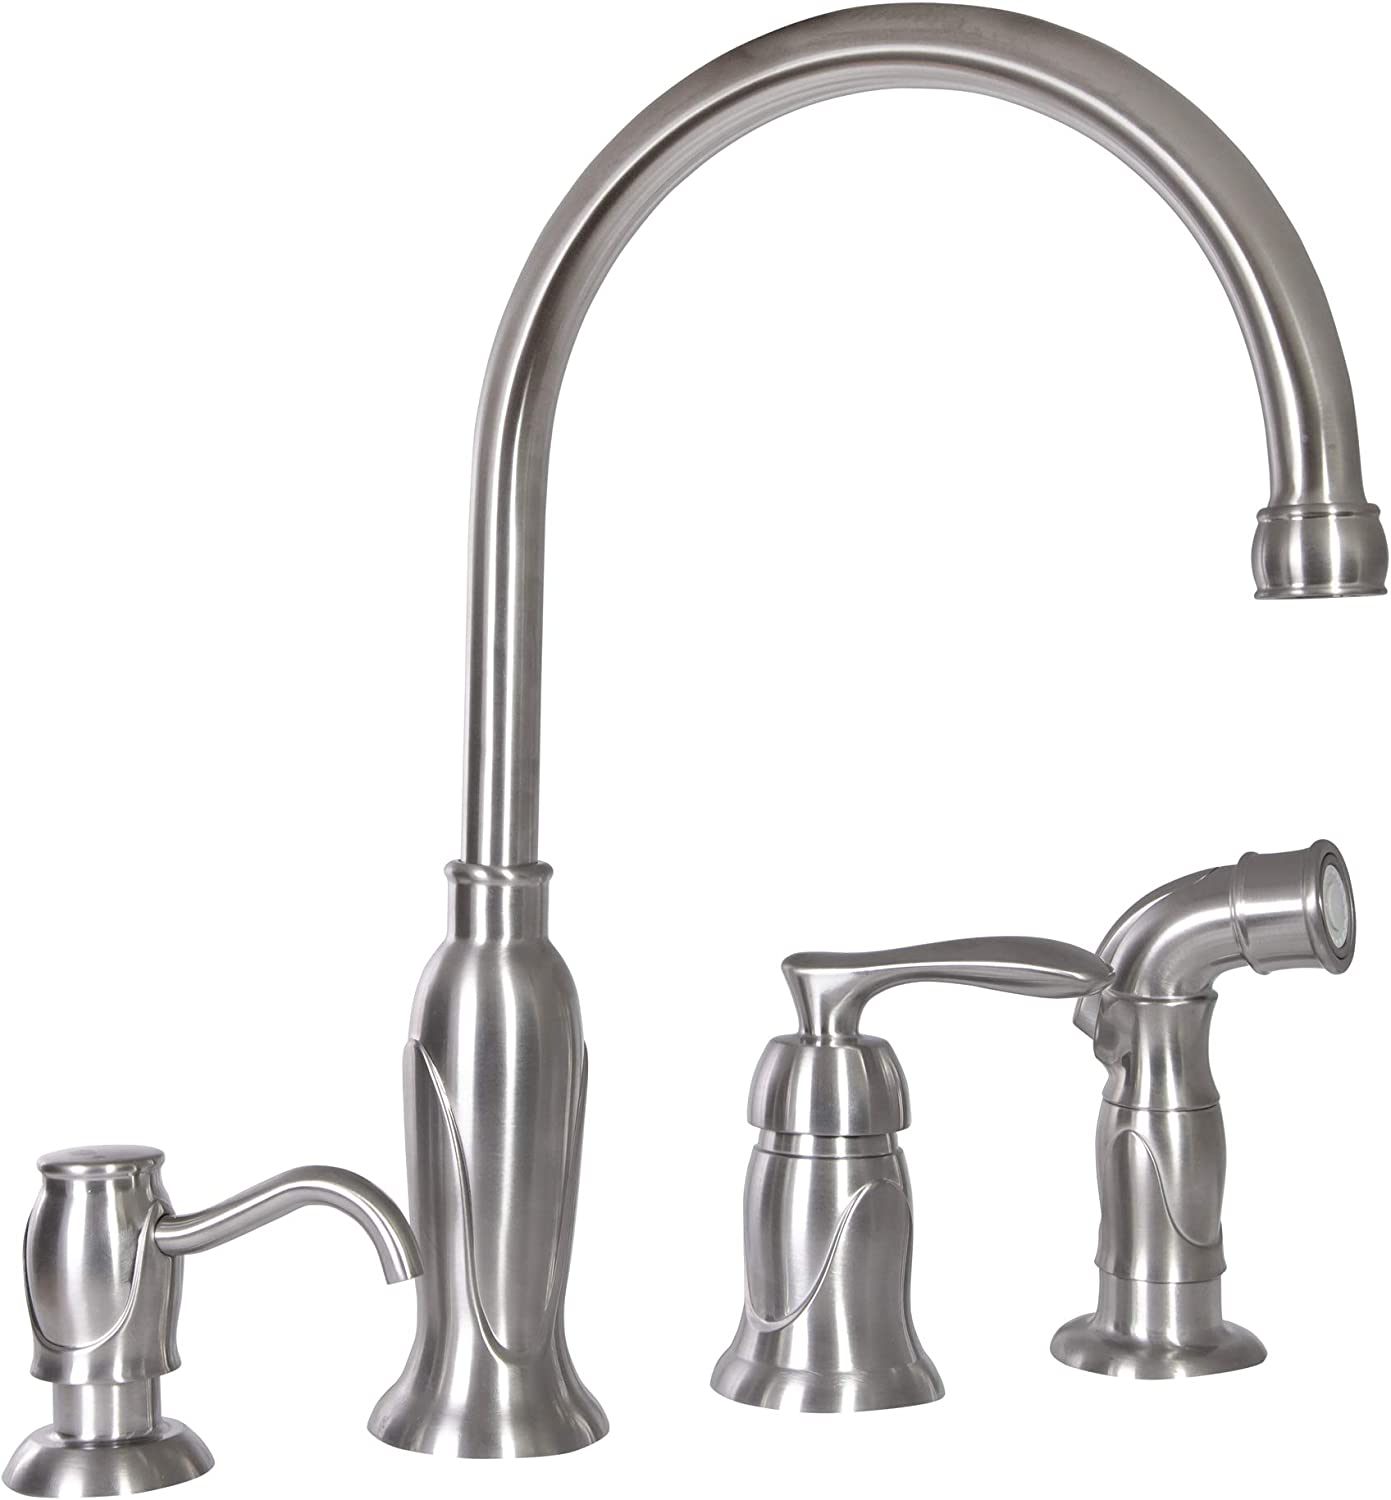 design house 525808 madison single handle kitchen faucet with side sprayer and soap dispenser satin nickel